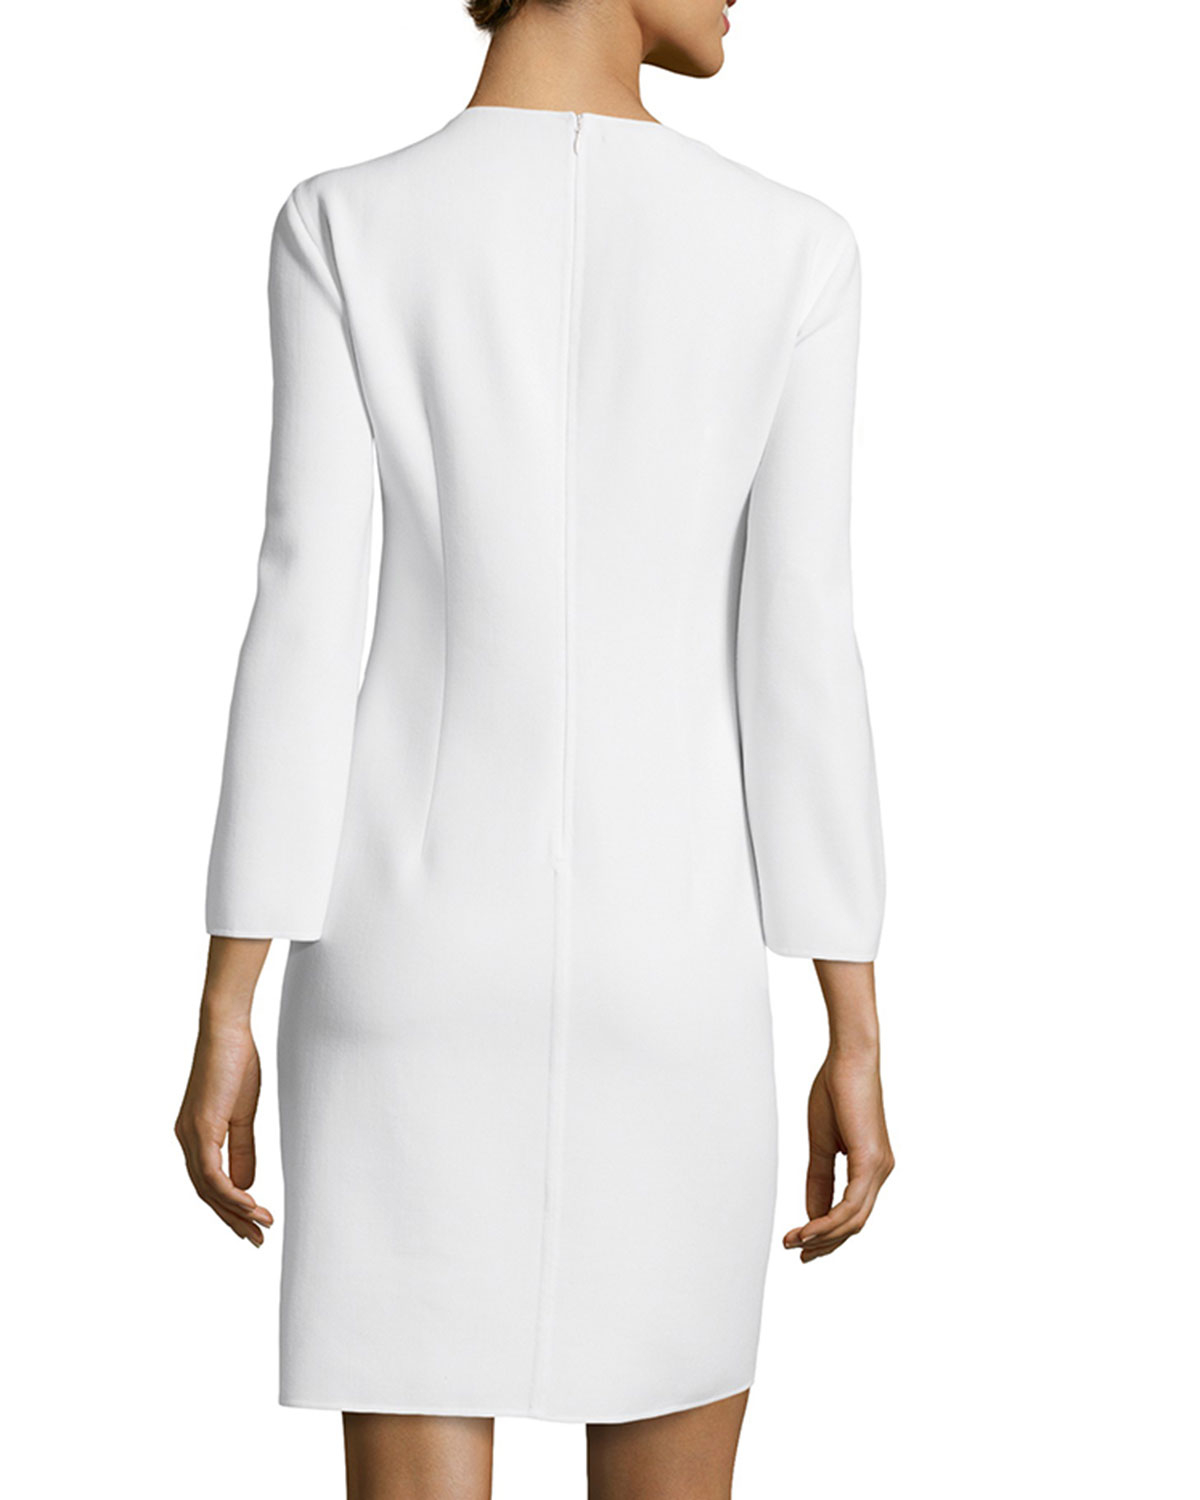 24f55b17466 Lyst - Michael Kors Long-sleeve Chain-front Tunic Dress in White